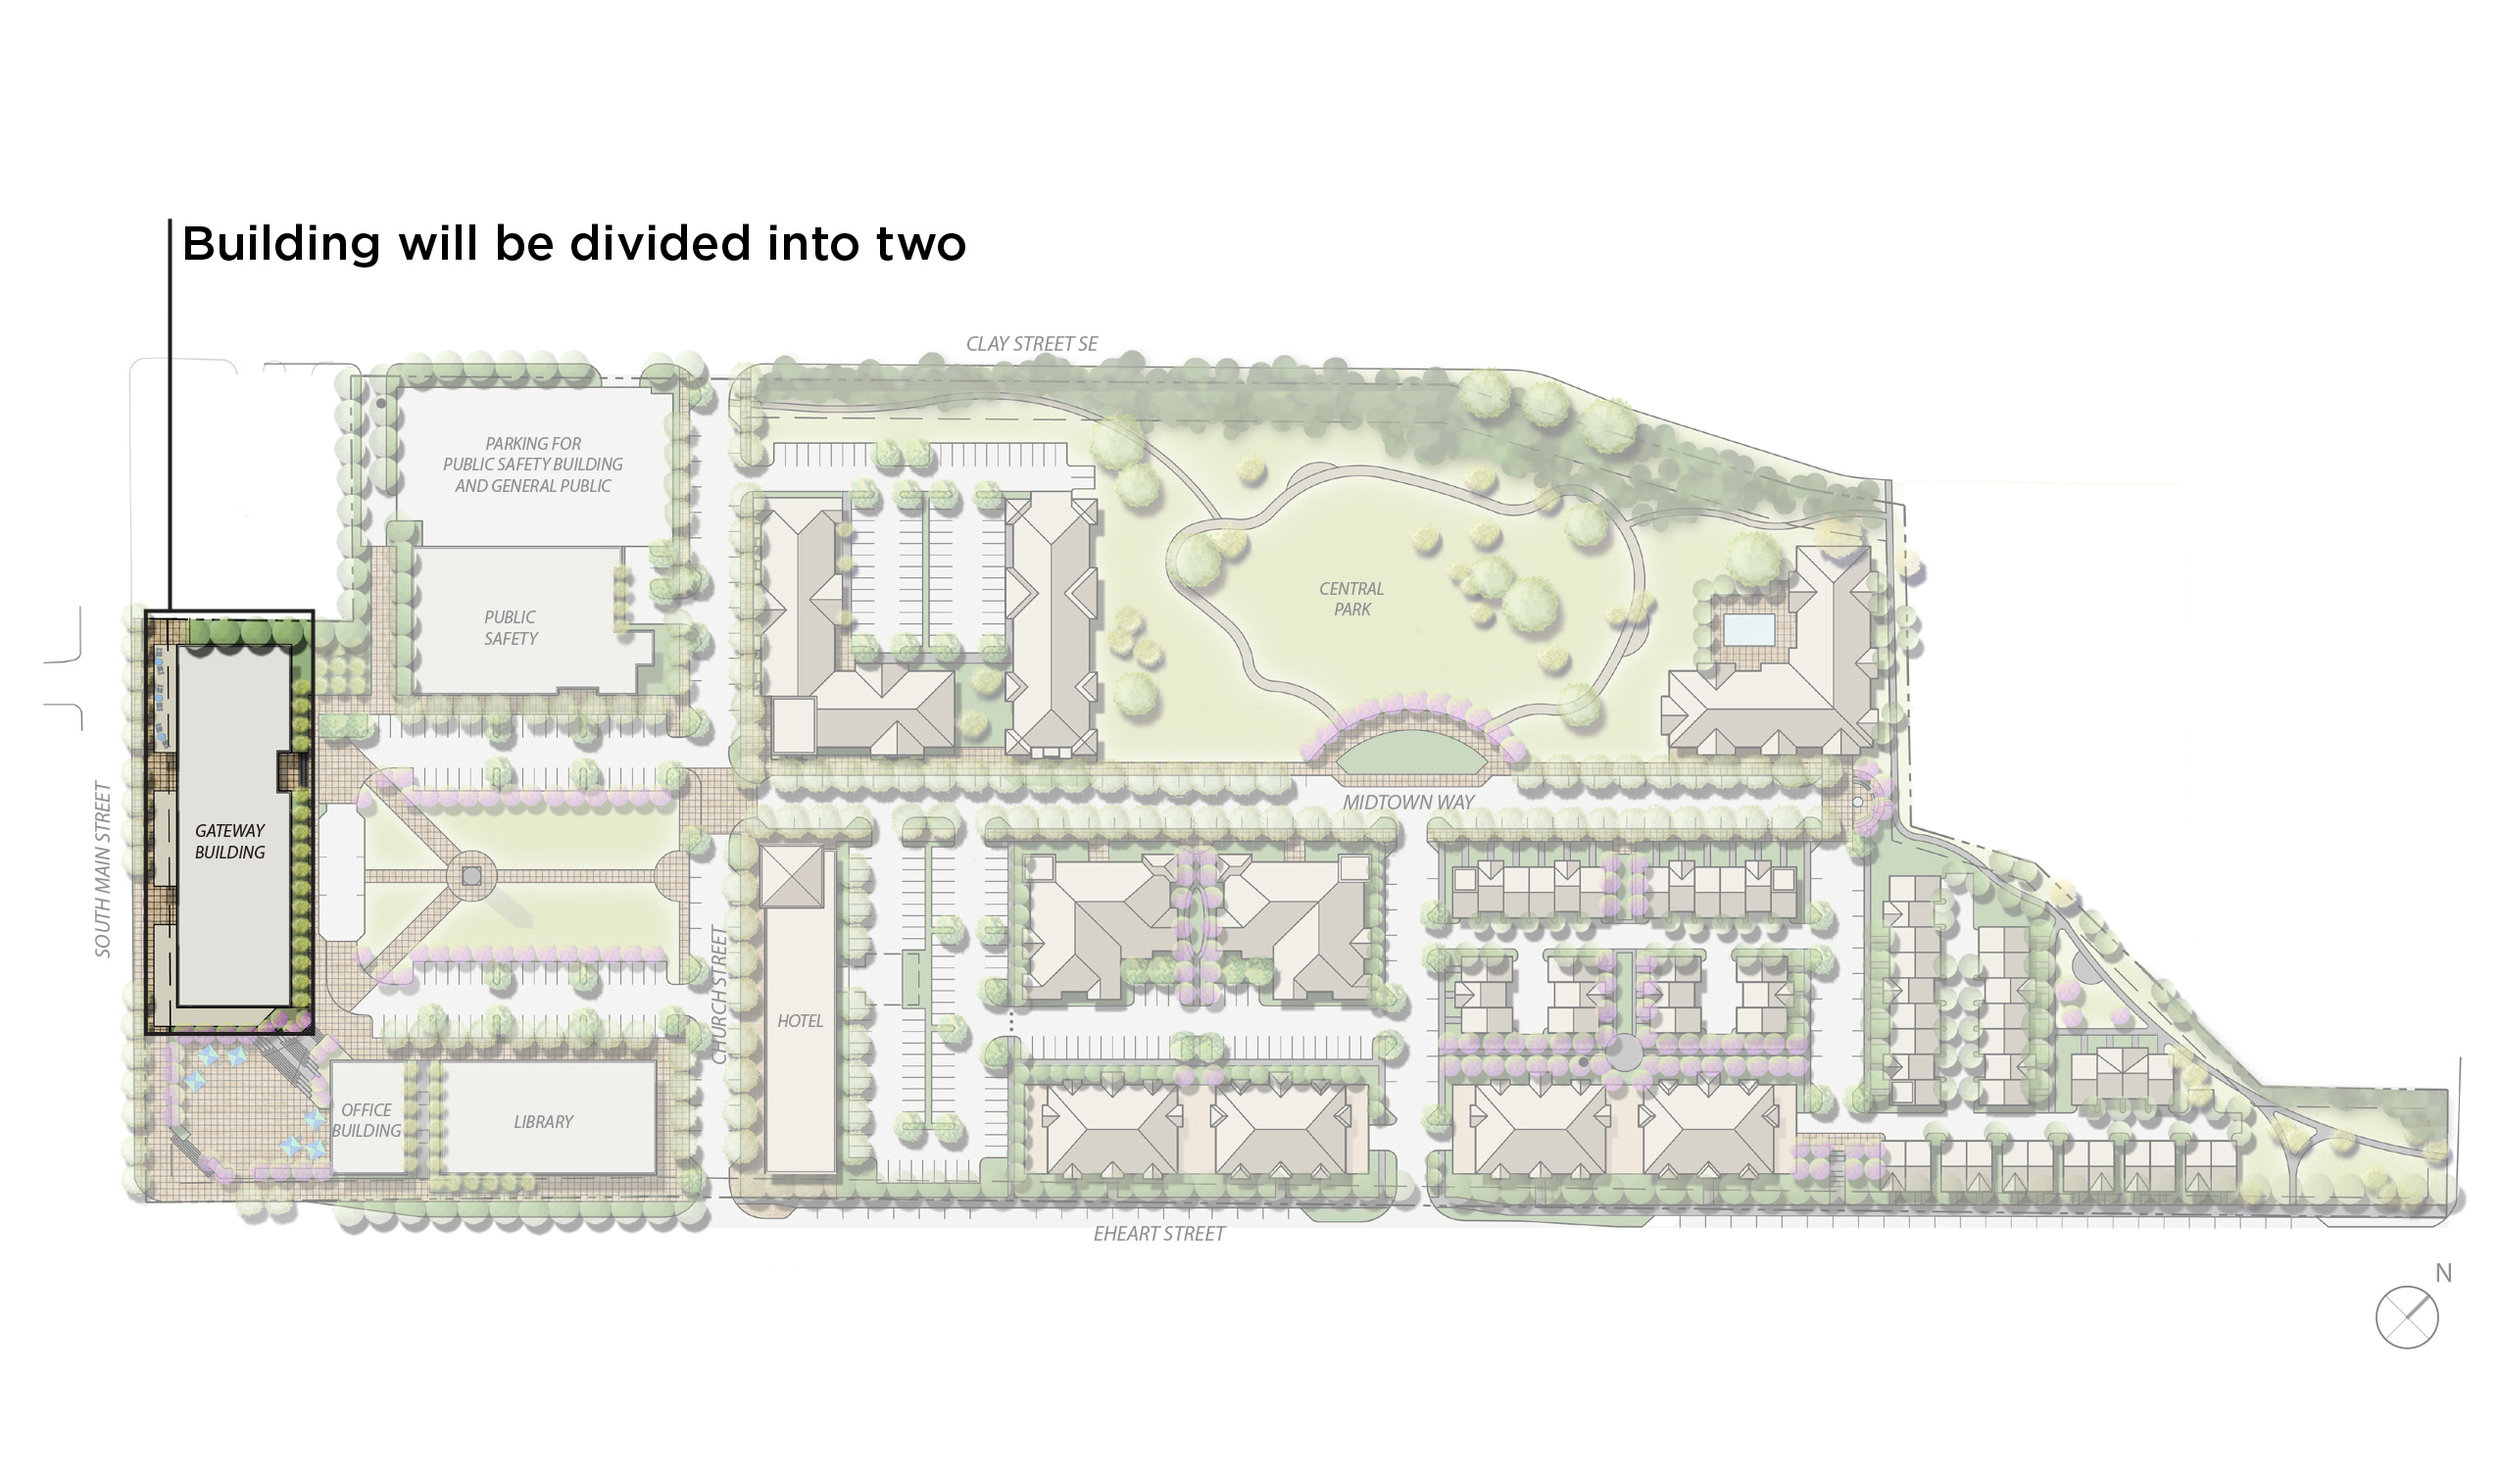 Gateway building will be divided into two